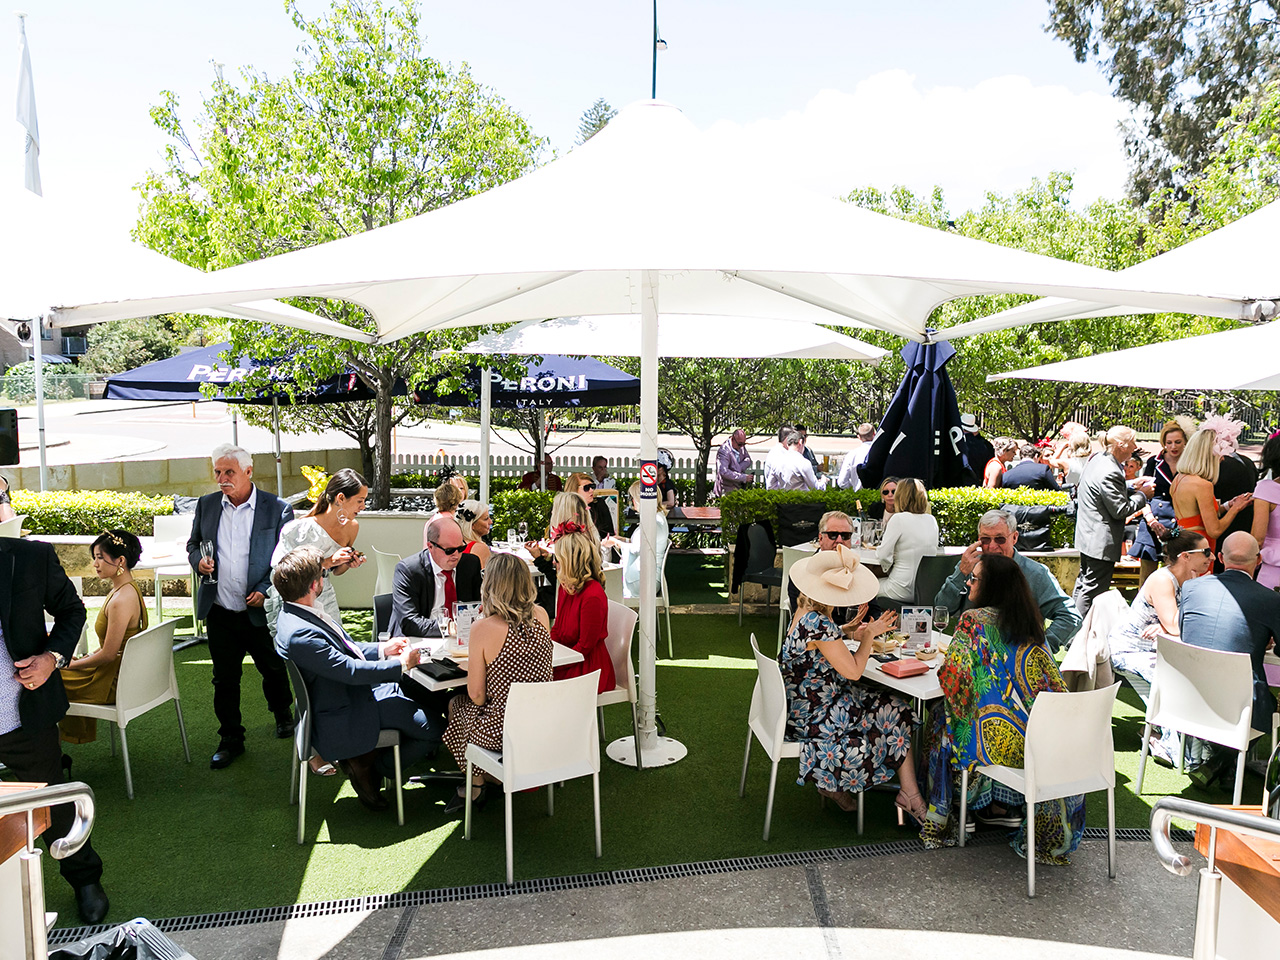 Guests Gathered Under The Open Function Area Shaded With Large Umbrellas